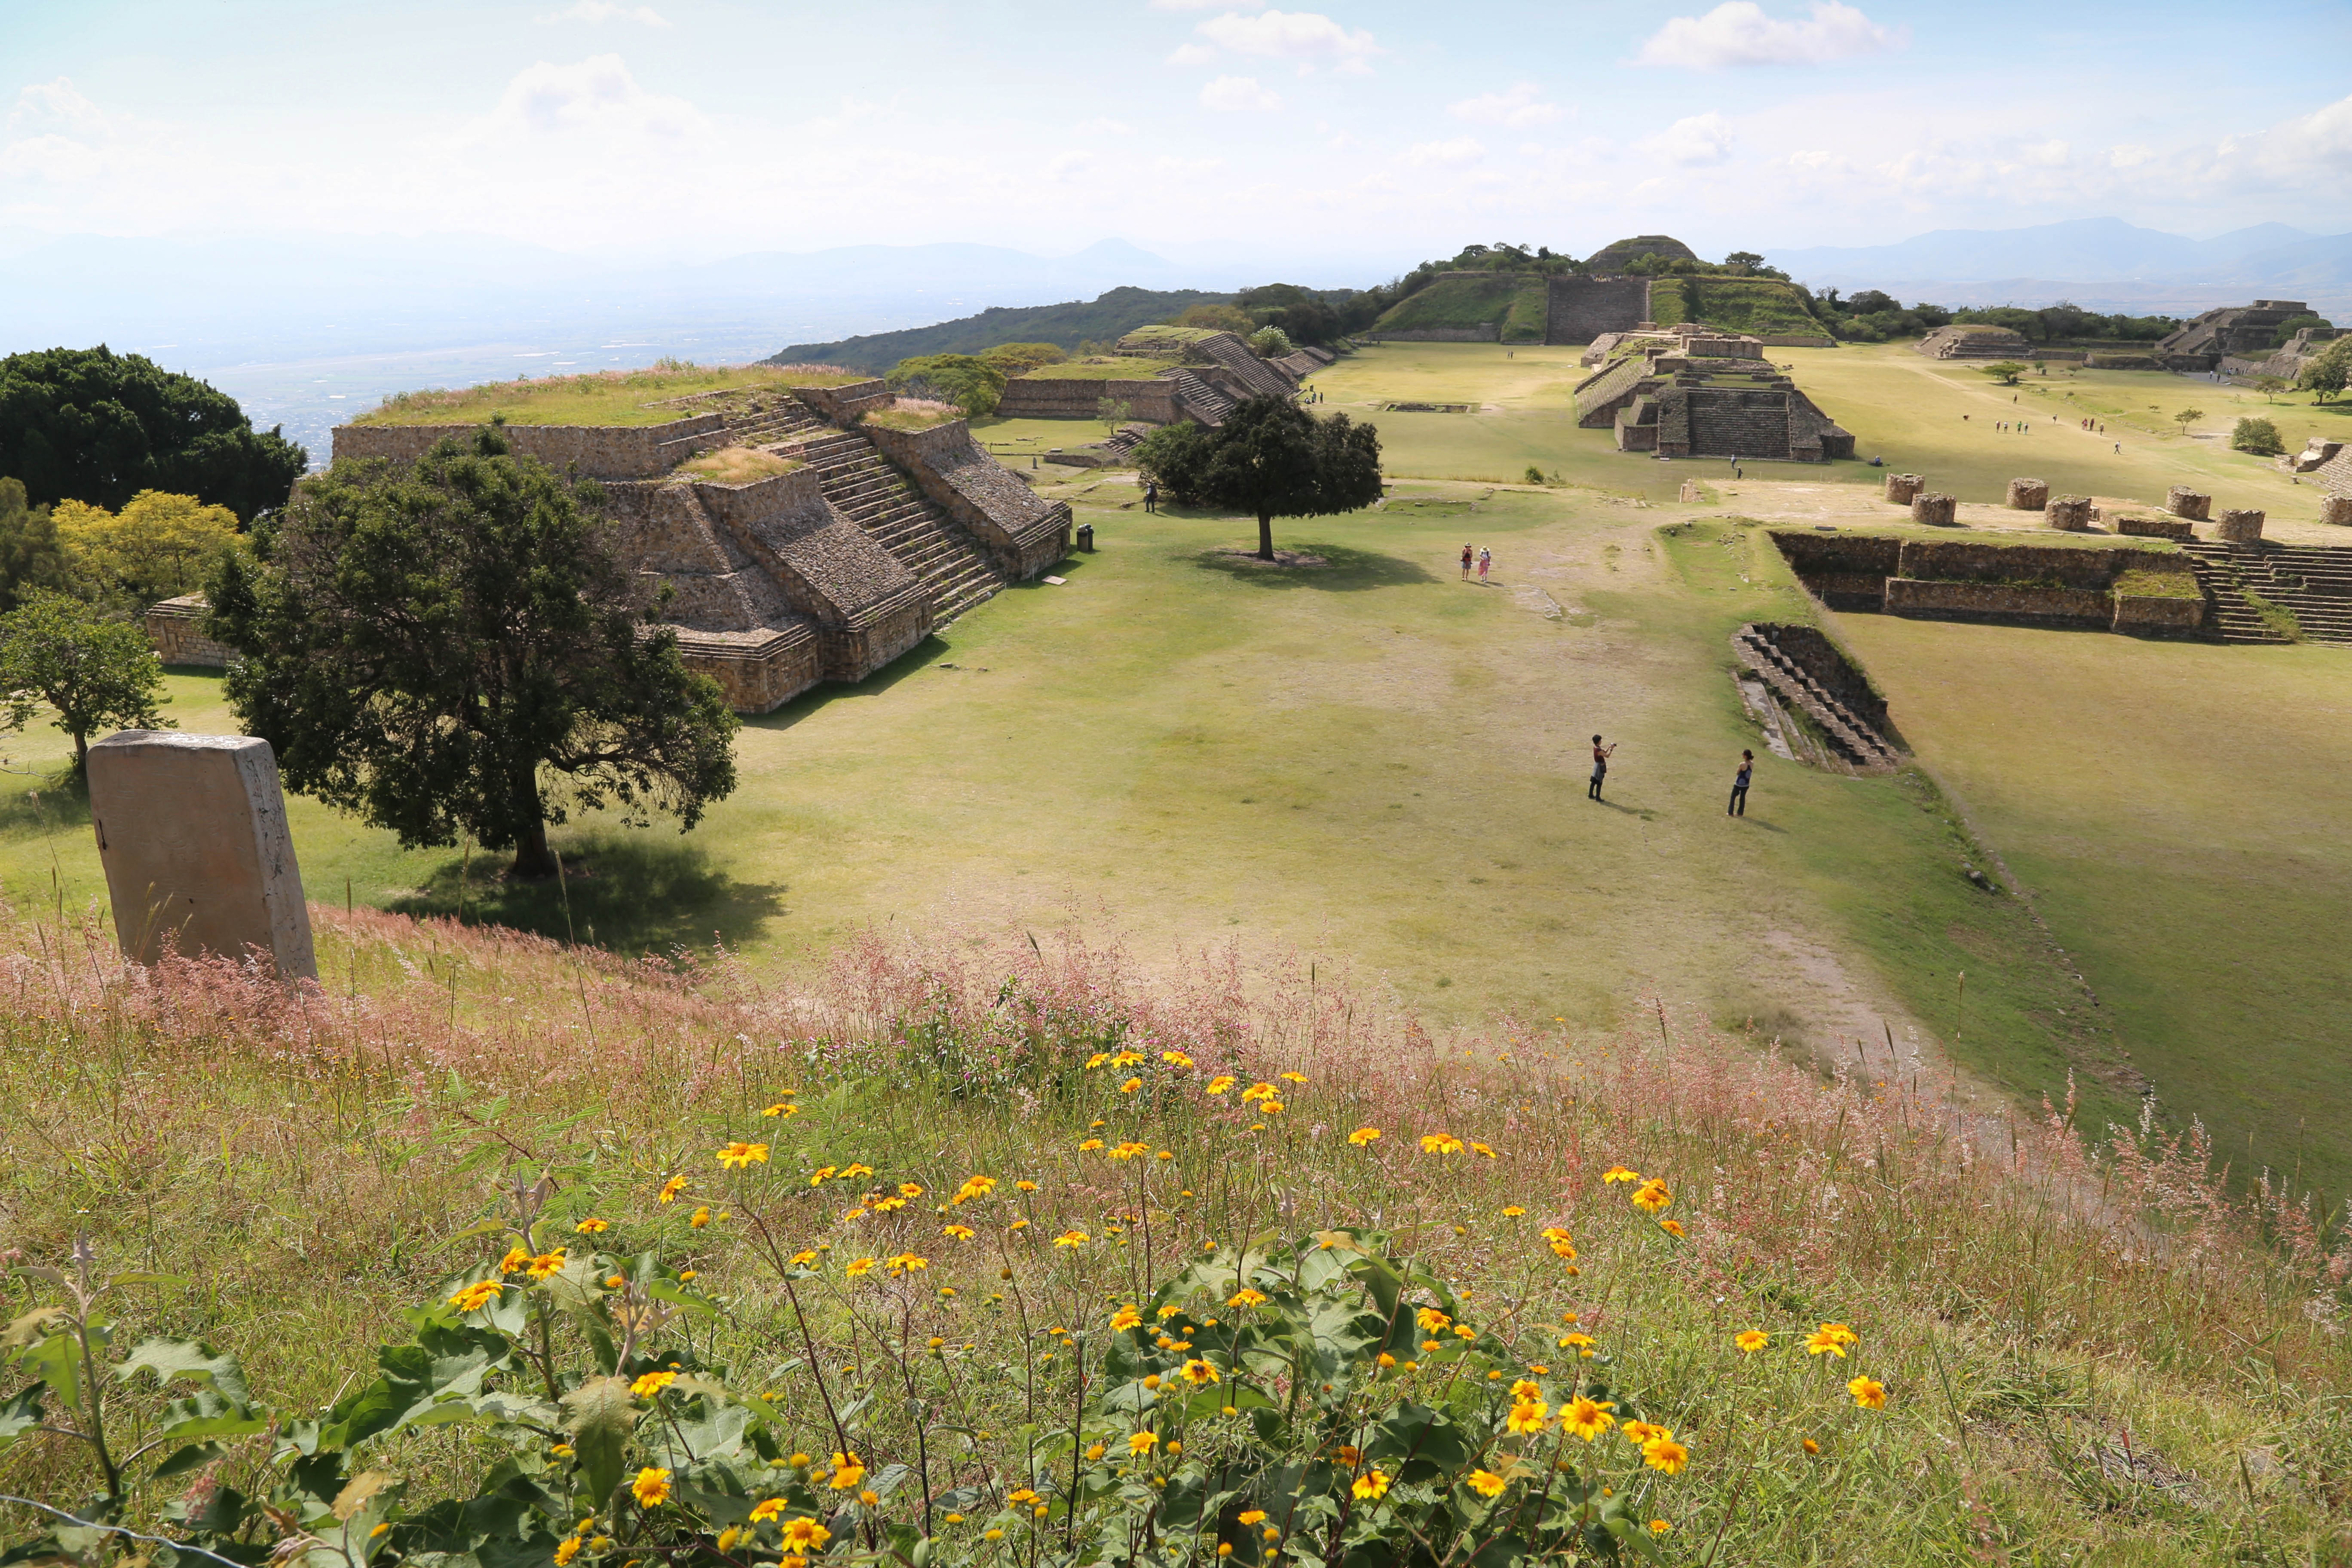 Monte Alban is one of the most-researched archaeological sites in Mexico.